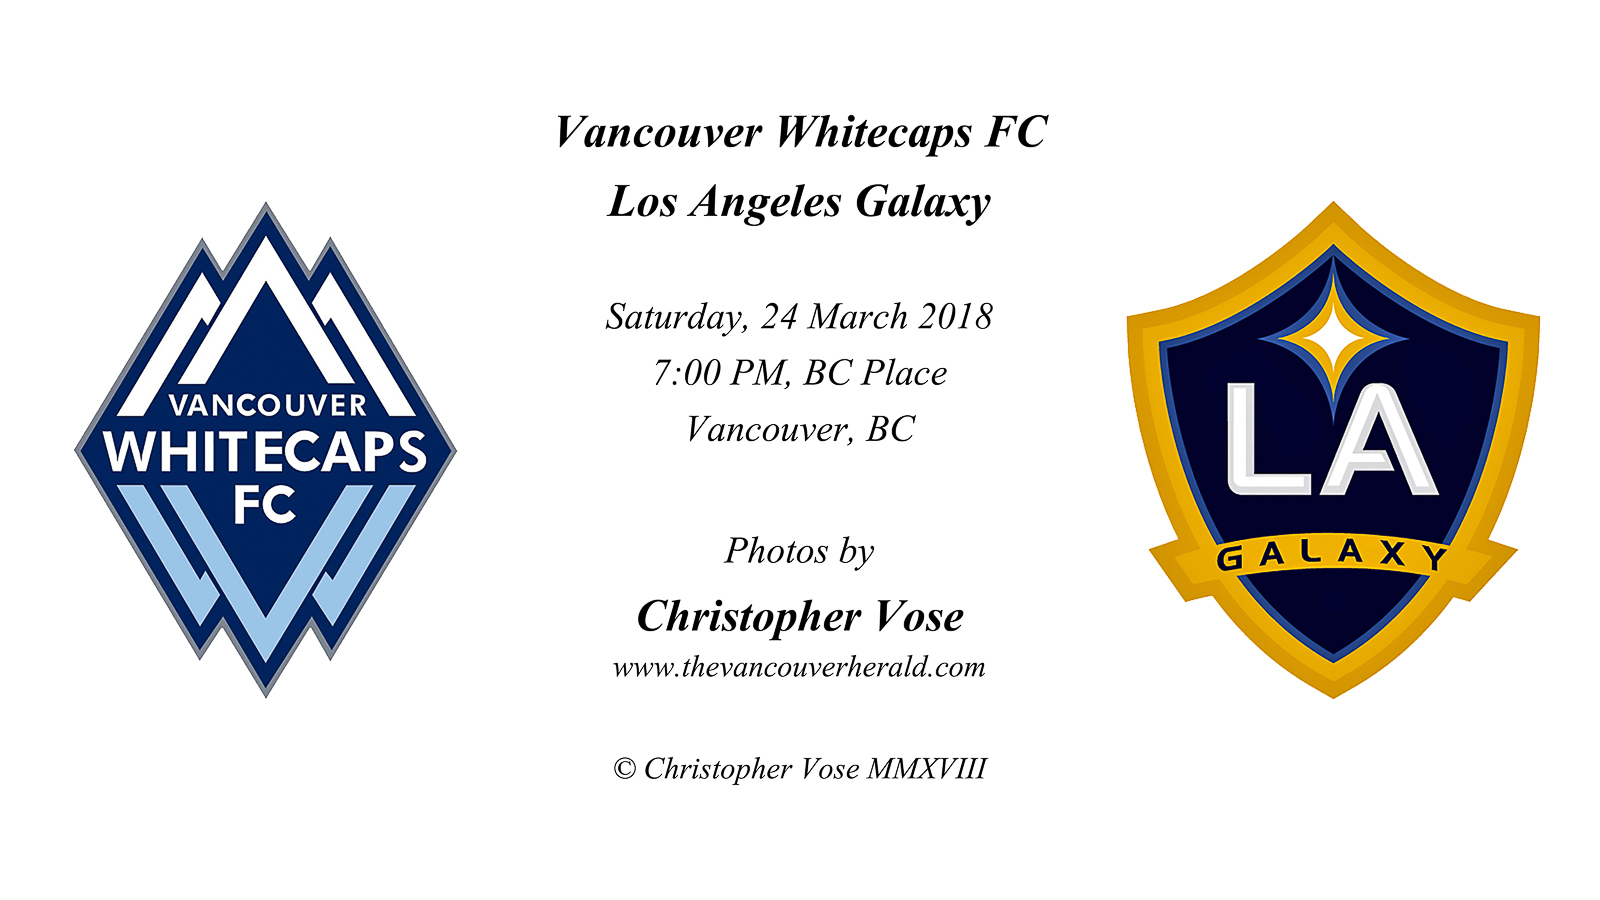 2018-03-24 Vancouver Whitecaps FC v Los Angeles Galaxy.jpg